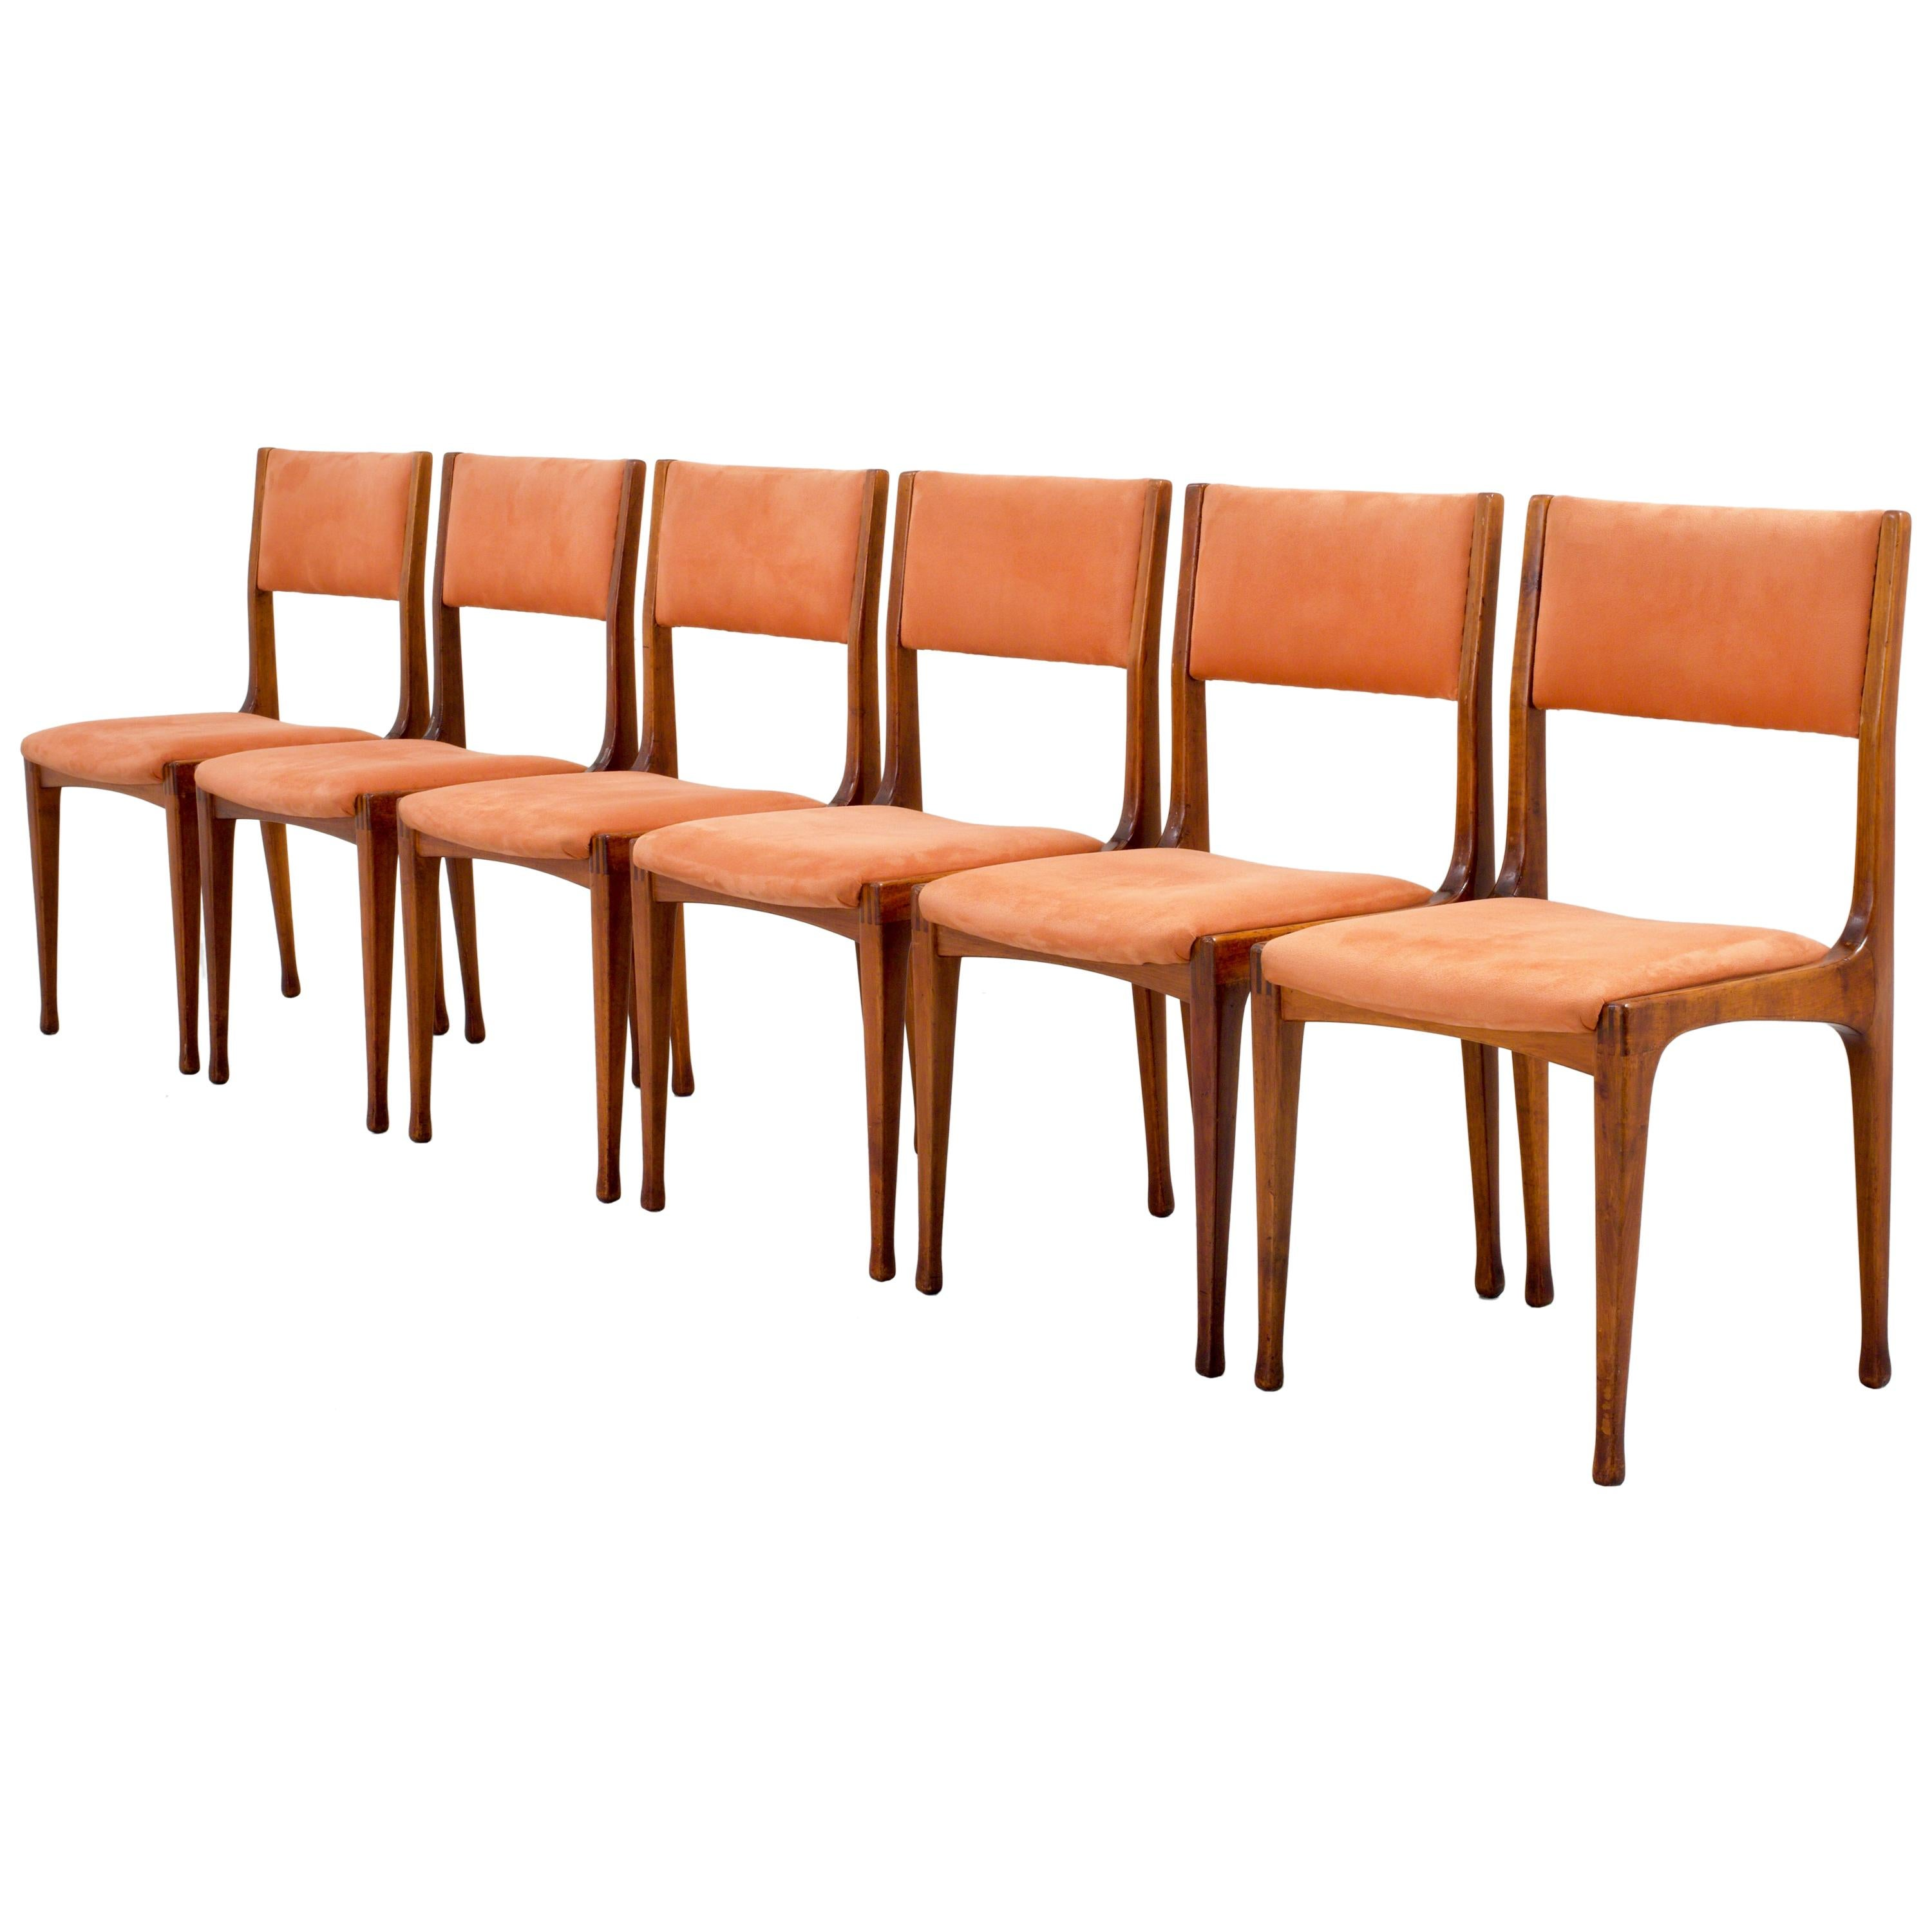 Set of Six Carlo de Carli '693' Dining Room Chairs for Cassina, Italy, 1959